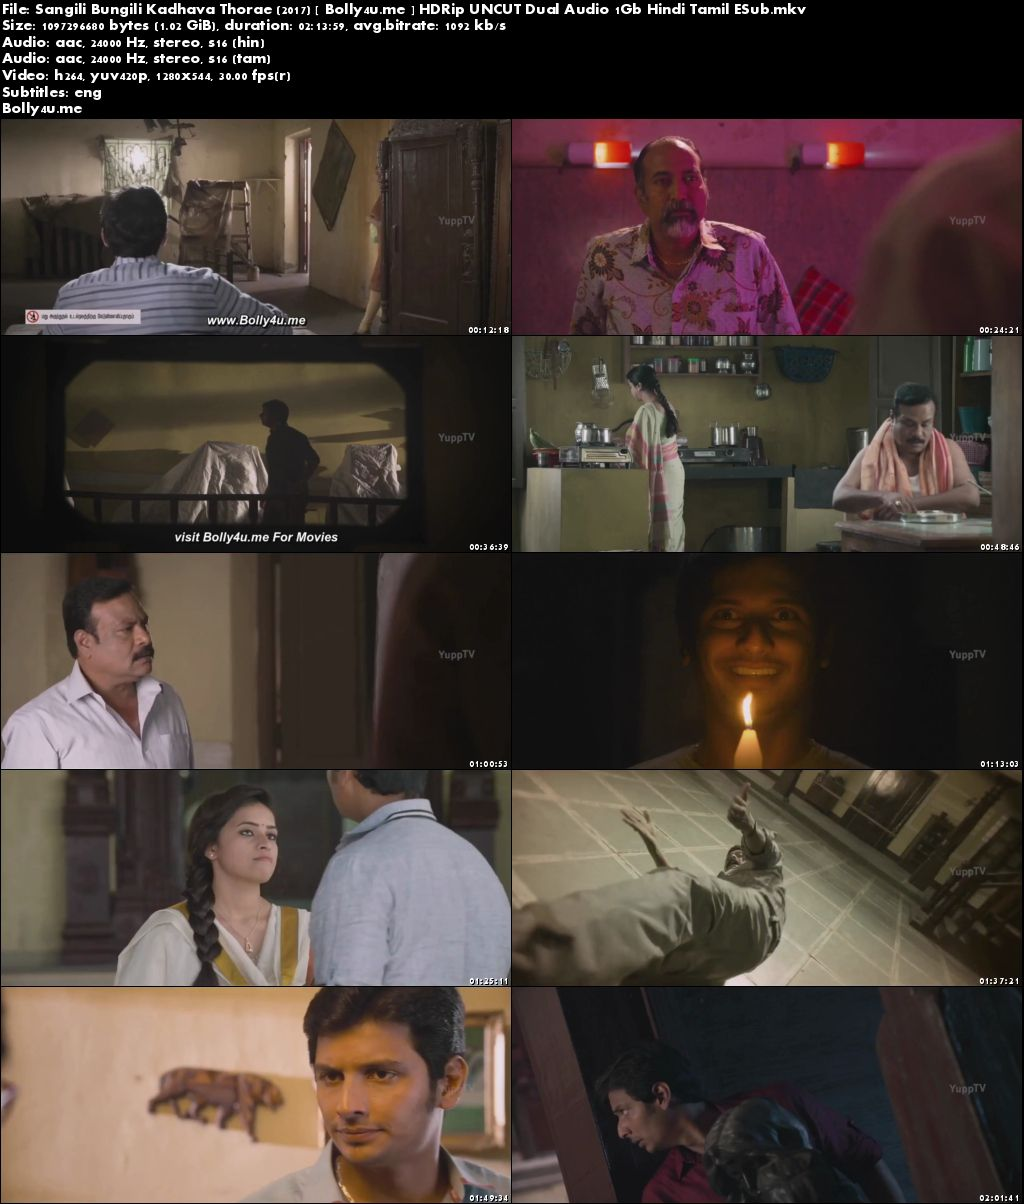 Sangili Bungili Kadhava Thorae 2017 HDRip 400MB UNCUT Dual Audio 480p Download